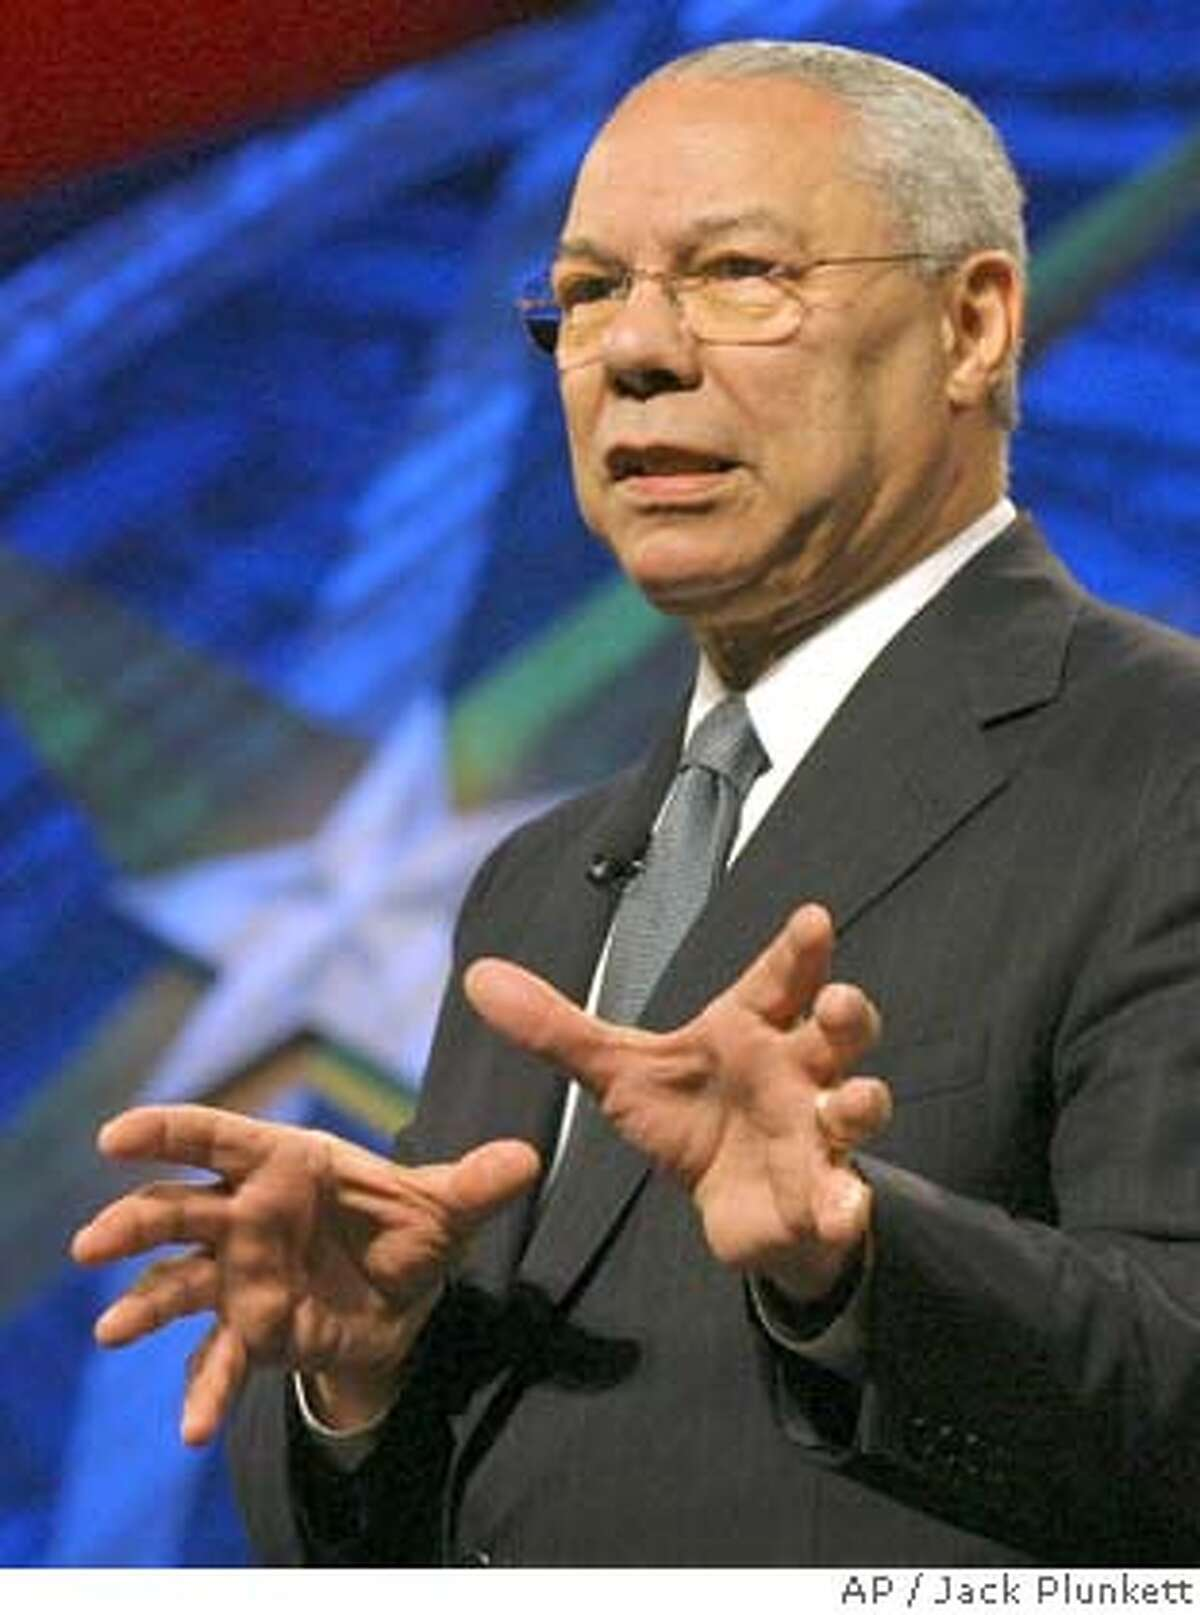 ** FILE ** Former Secretary of State Colin Powell speaks at the World Congress of Information Technology in Austin, Texas in this May 5, 2006 file photo. Four years after President Bush's State of the Union speech touched off a stormy debate over the threat posed by Iraq, former White House aide I. Lewis